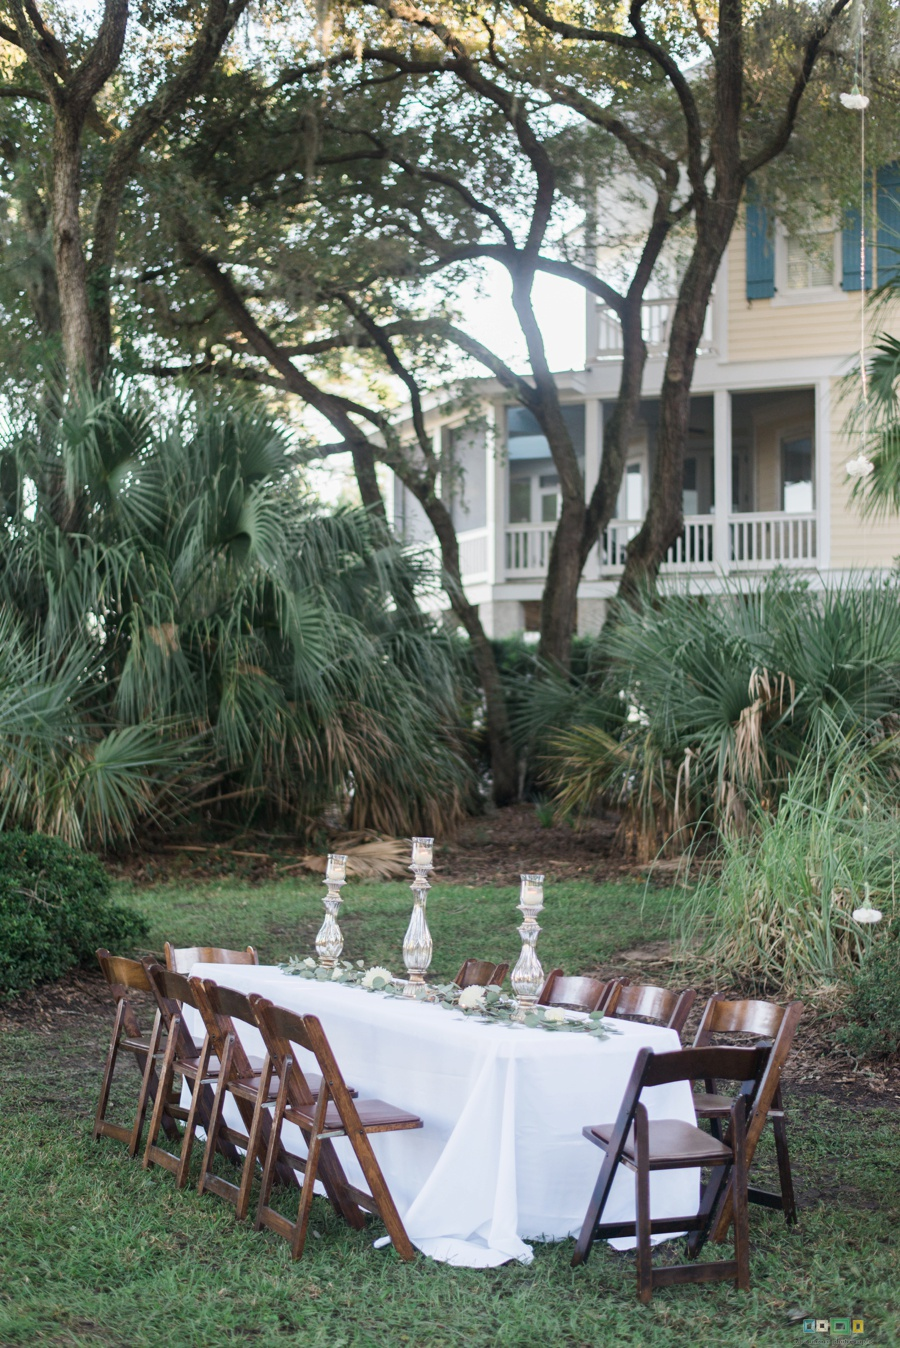 alea-moore-photography-Daufuskie-Island-wedding-ivory-and-beau-bridal-boutique-dakota-nicole-miller-rebecca-schoneveld-marisol-classic-southern-wedding-savannah-wedding-dresses-savannah-bridal-boutique-savannah-weddings-savannah-bridal-gowns-19.jpg